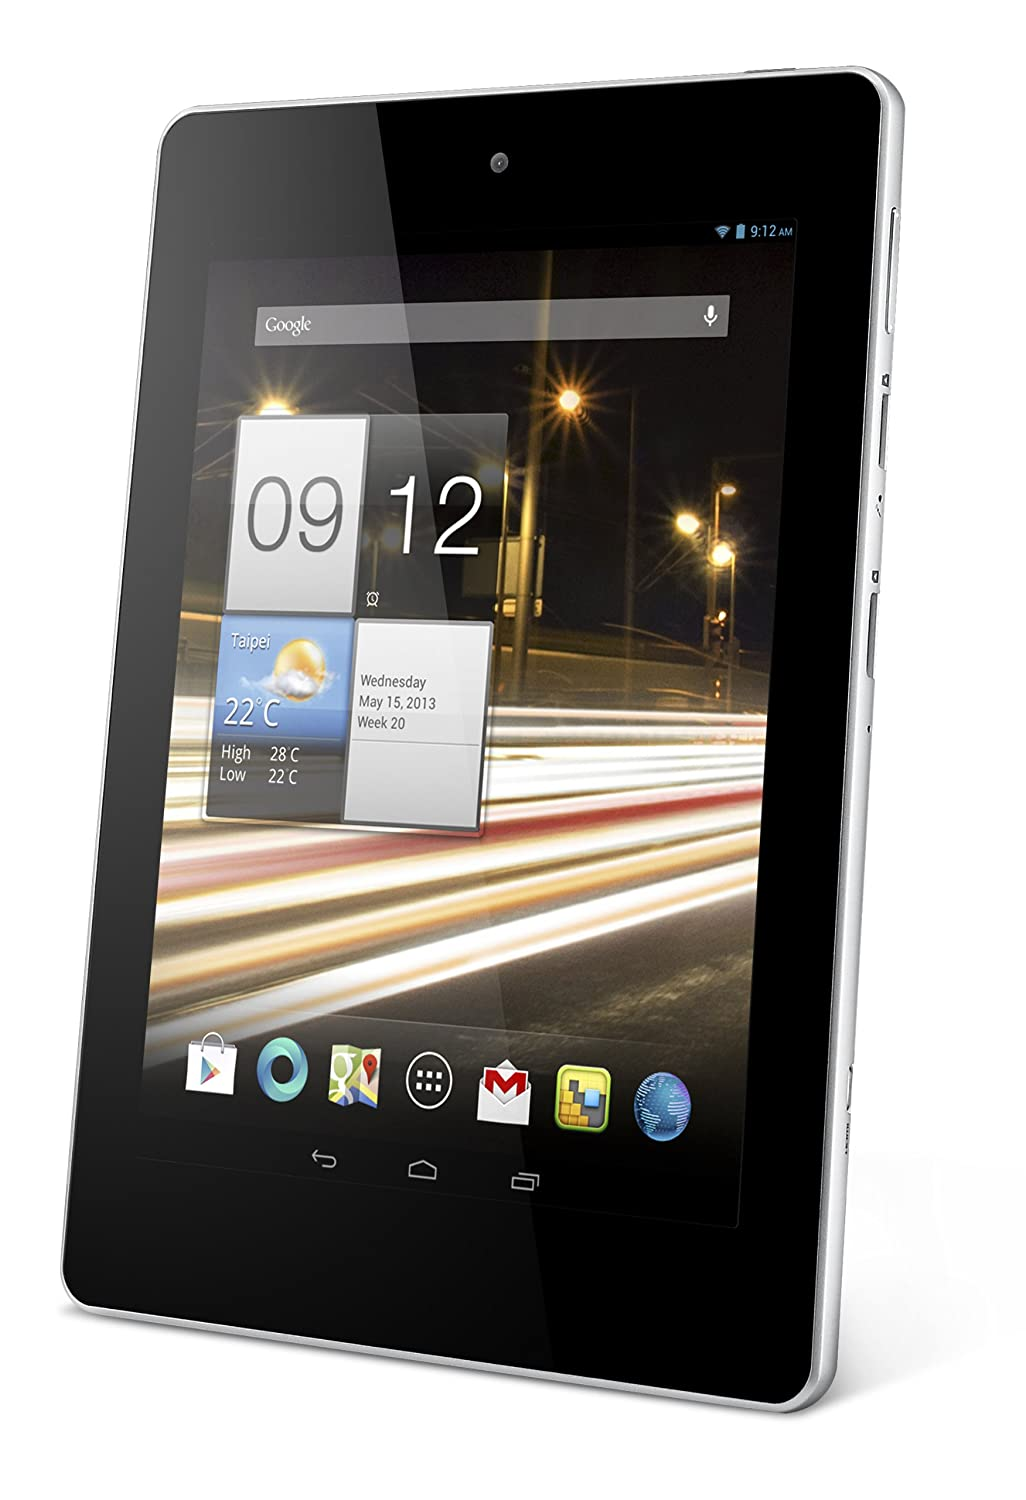 Acer Iconia A1-810 Tablet price in Pakistan, Acer in ...